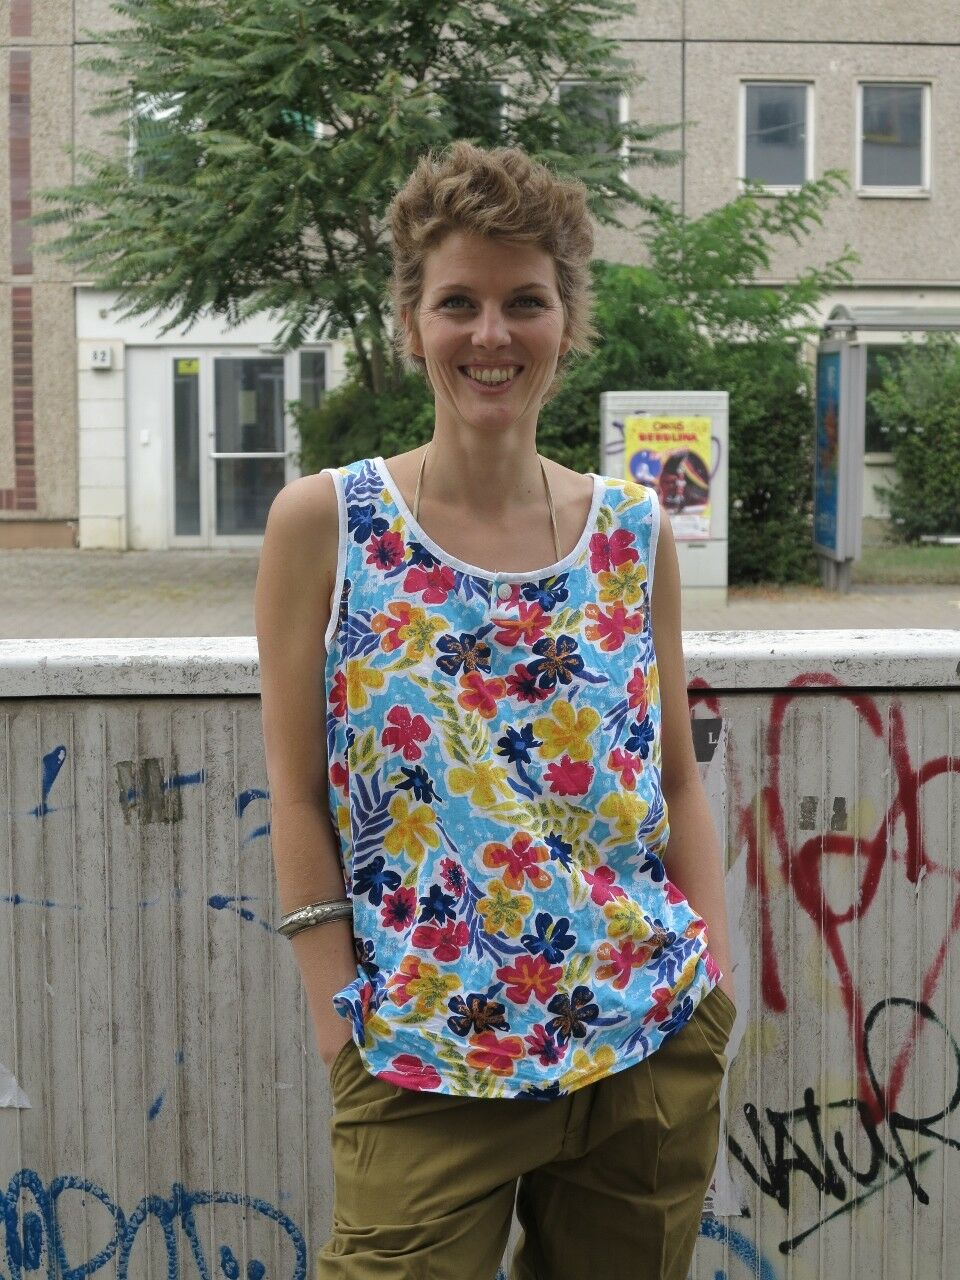 T-shirt Top bluemenmuster Baumwolle 90er TRUE VINTAGE 90s t-shirt with flowers